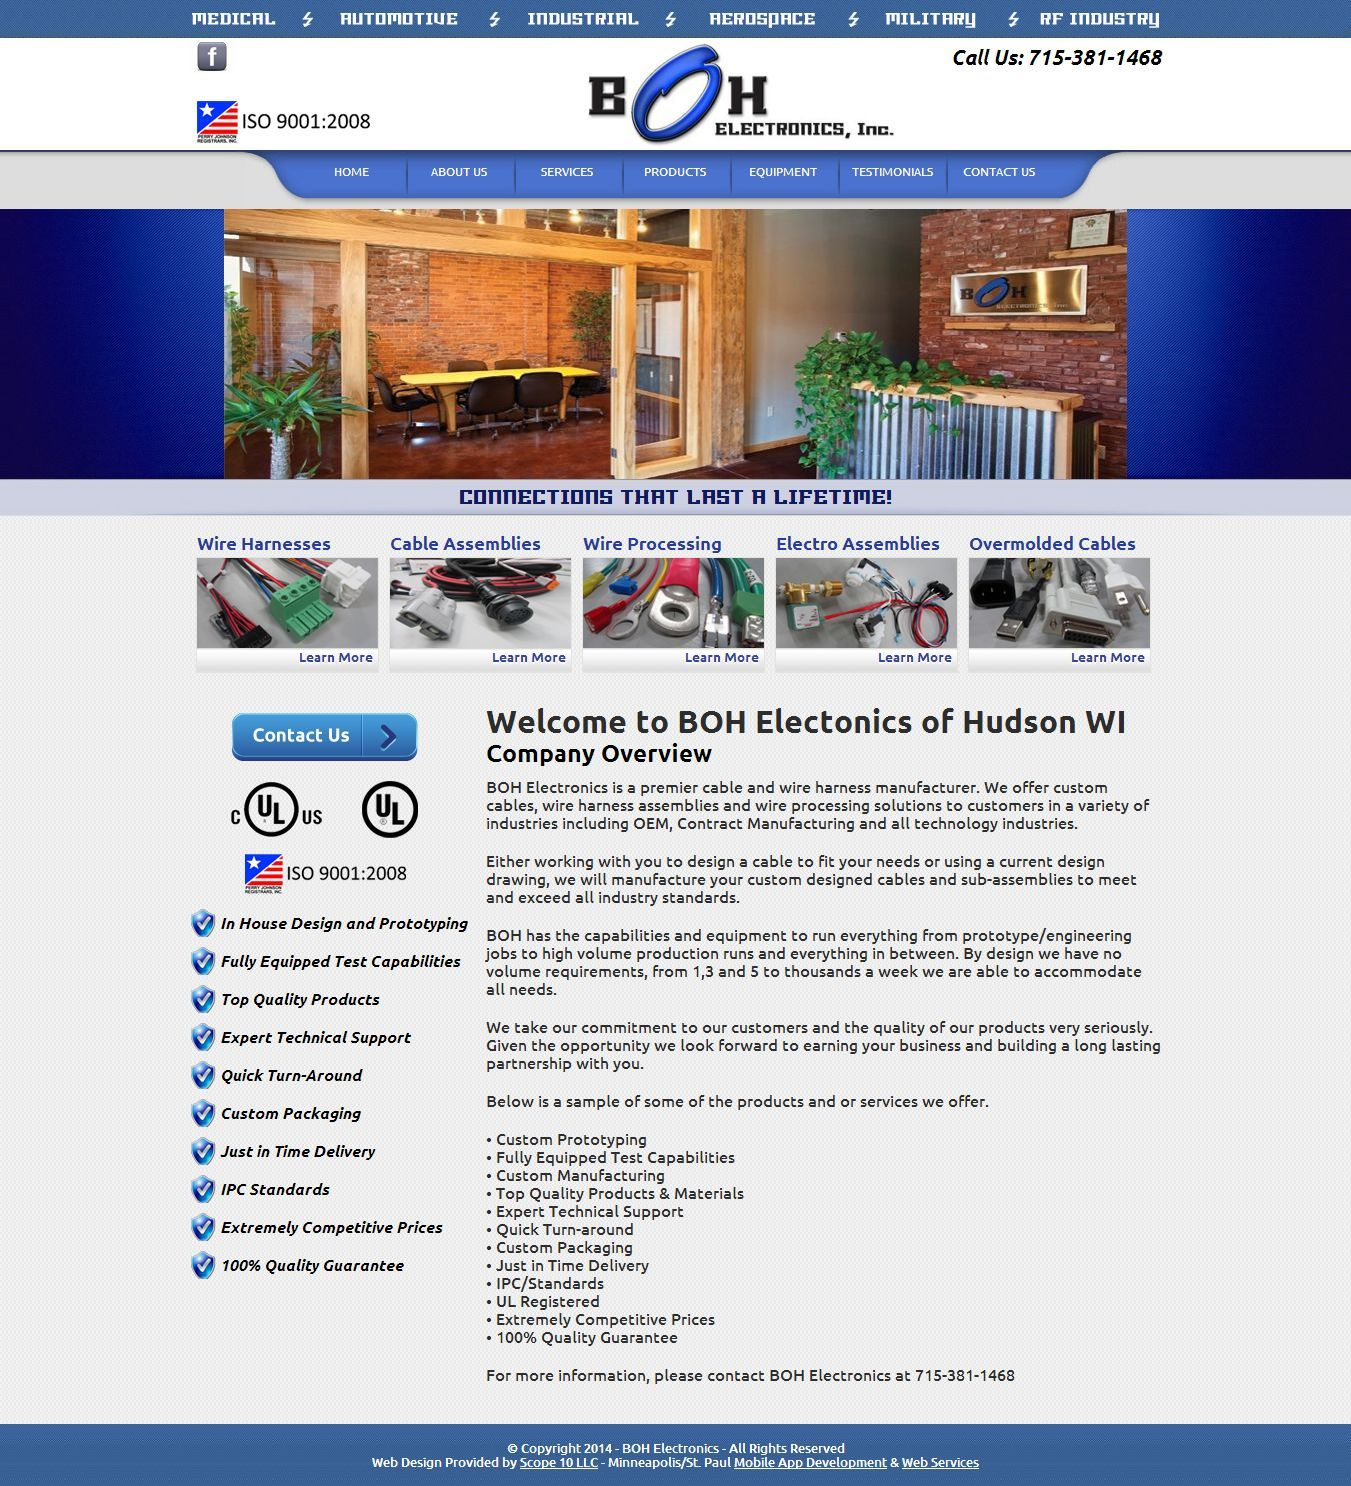 Scope10com Boh Electronics Bohelectronicscom Is A Wiring Harness Company Premier Cable And Wire Manufacturer They Offer Custom Cables Assemblies Processing Solutions To